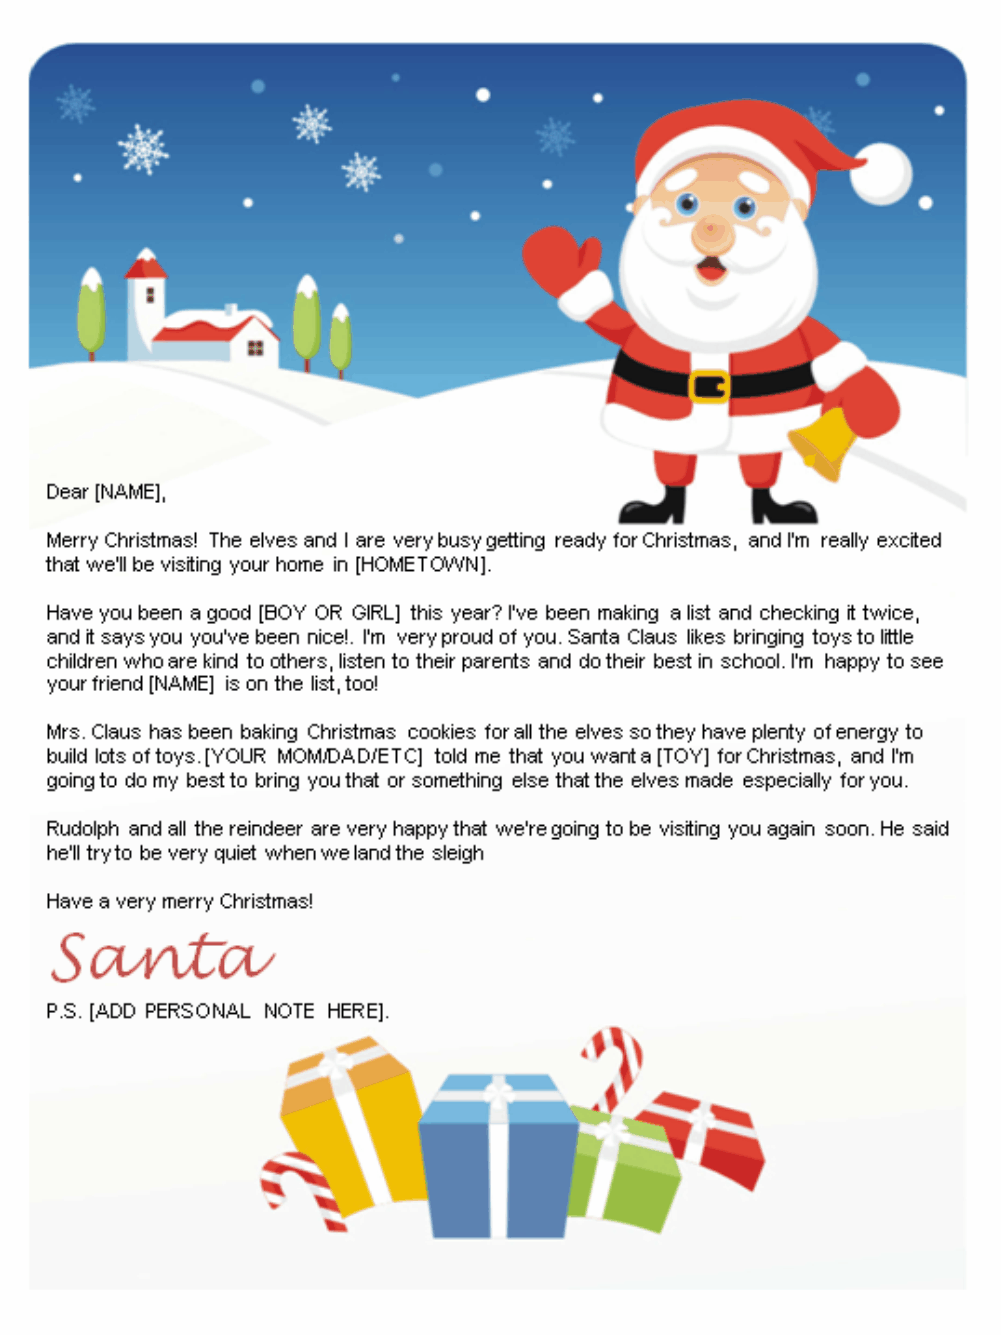 Santa Letters to Print at Home - Gifts Designs at Christmas Letter ...